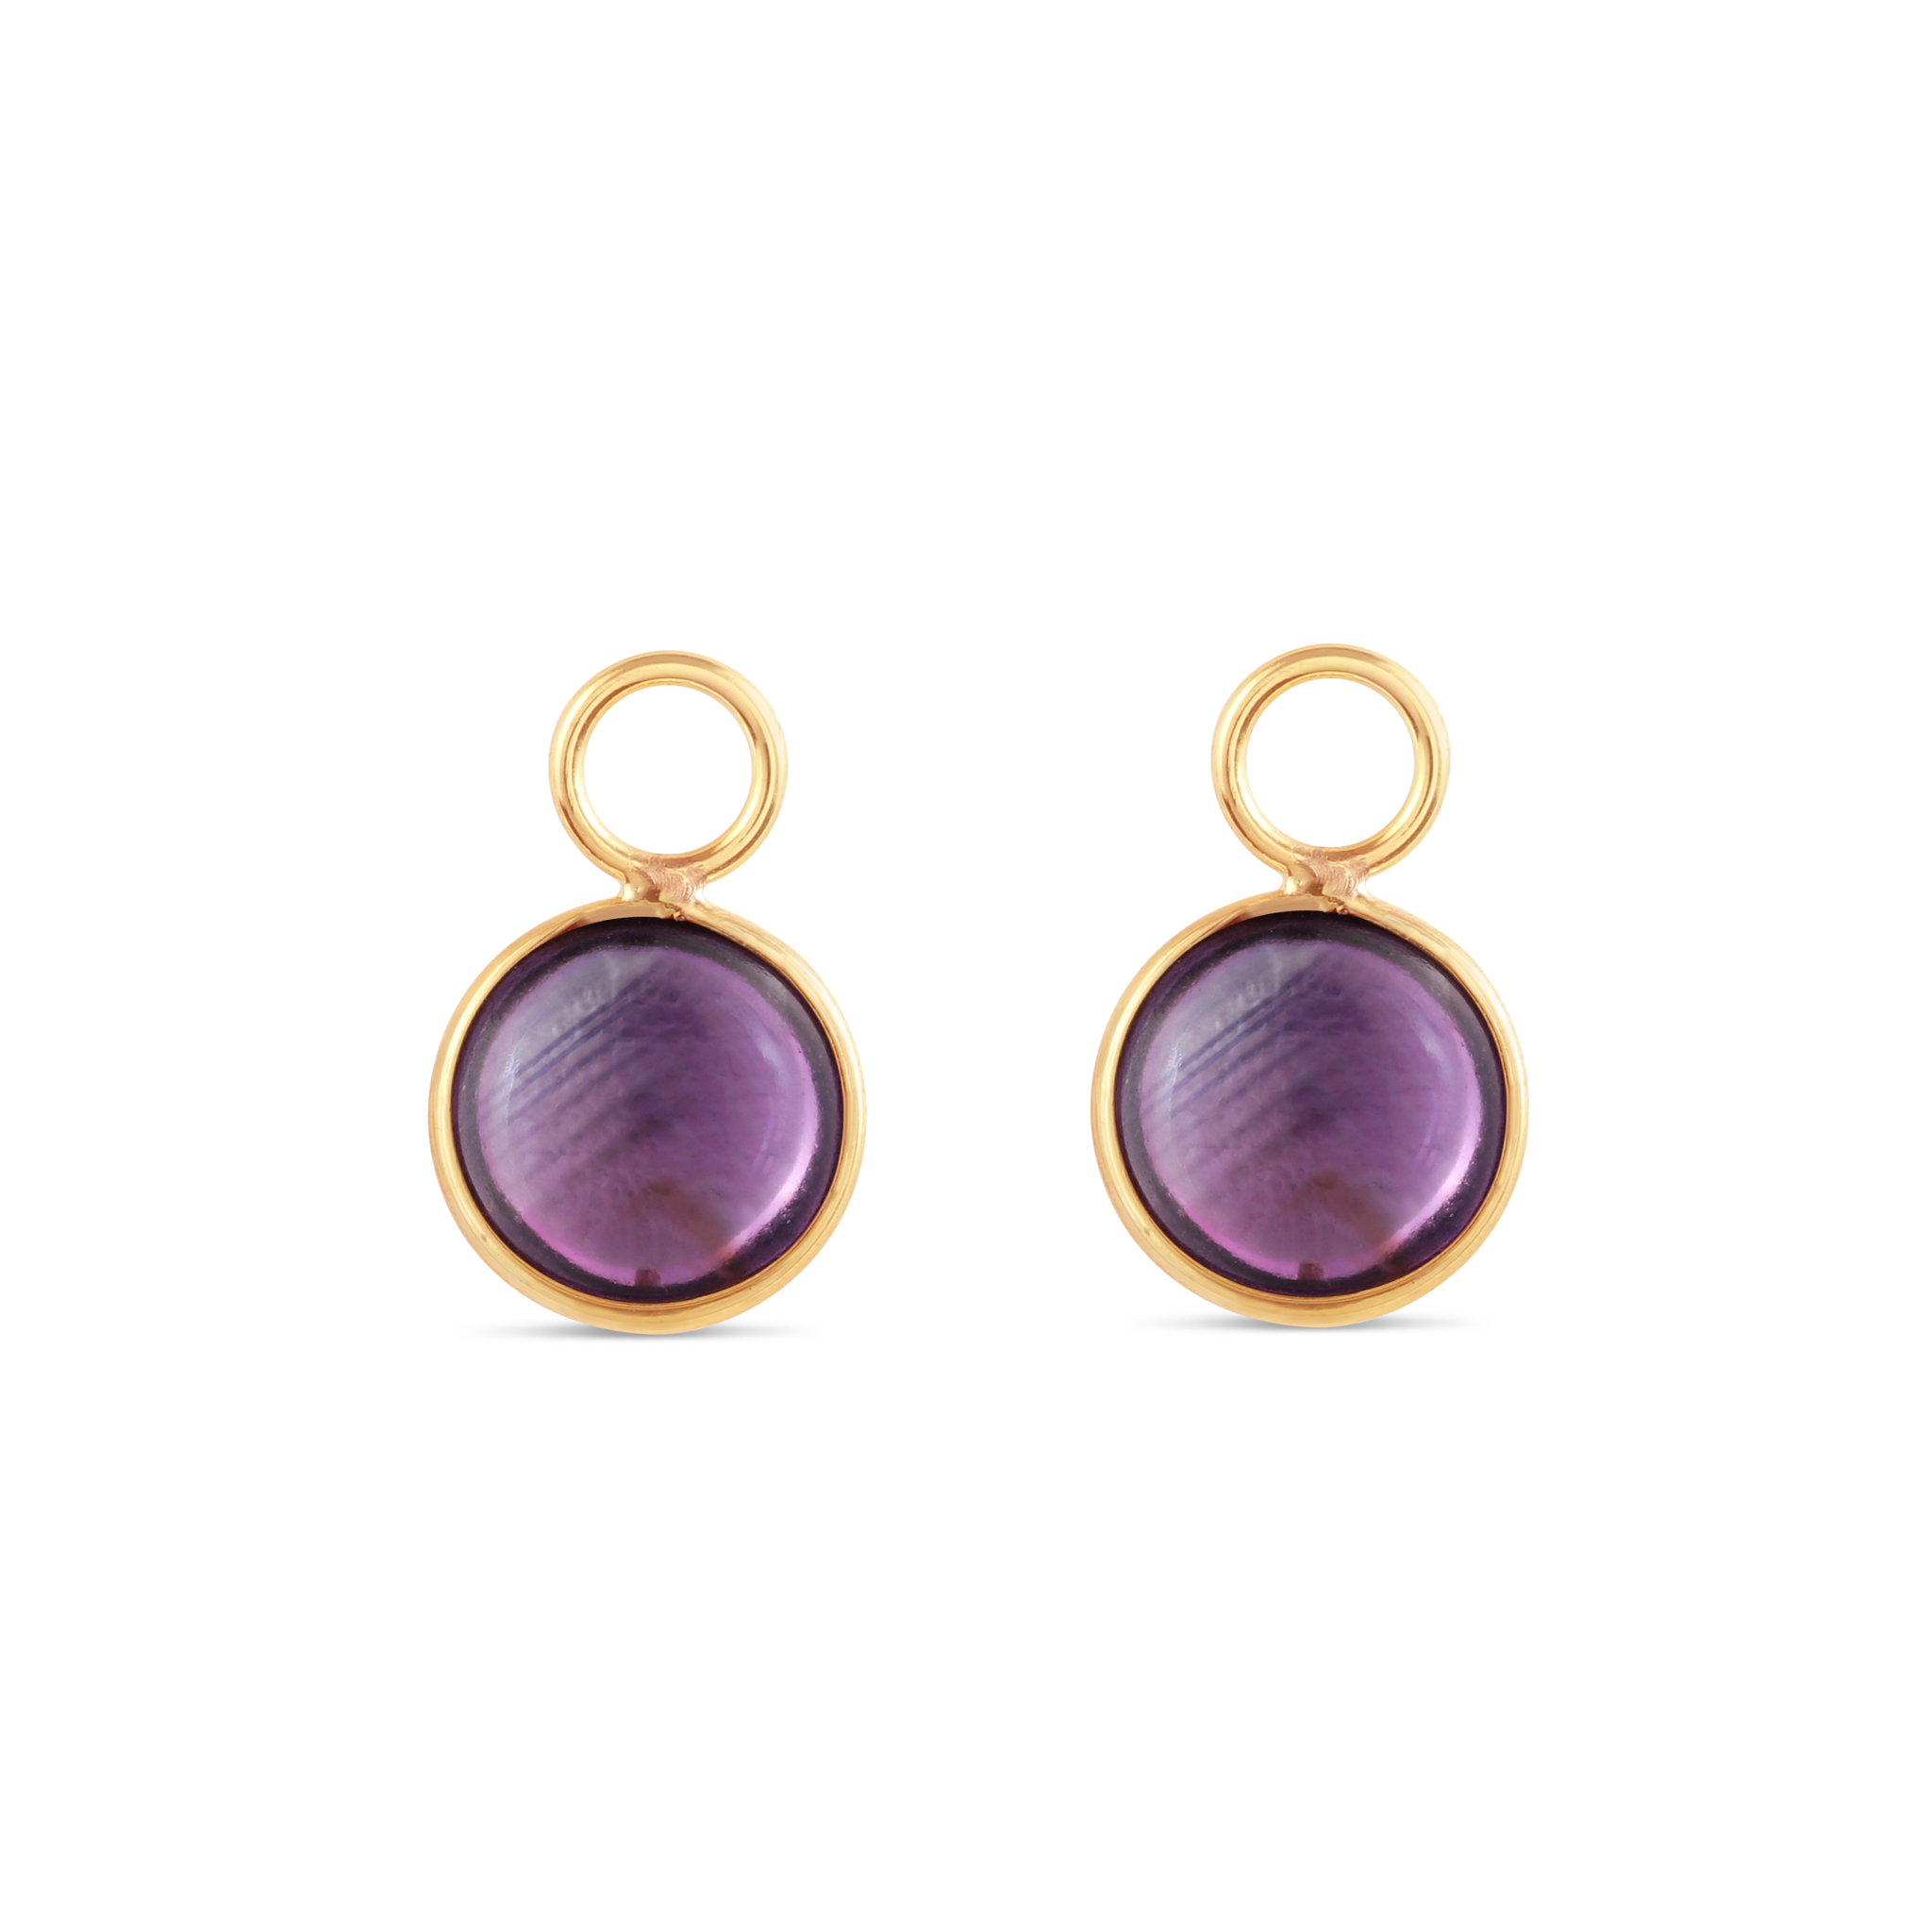 Amethyst Simple Rd Double Sided Cabochon Interchangeabe Earring In 18K Yellow Gold